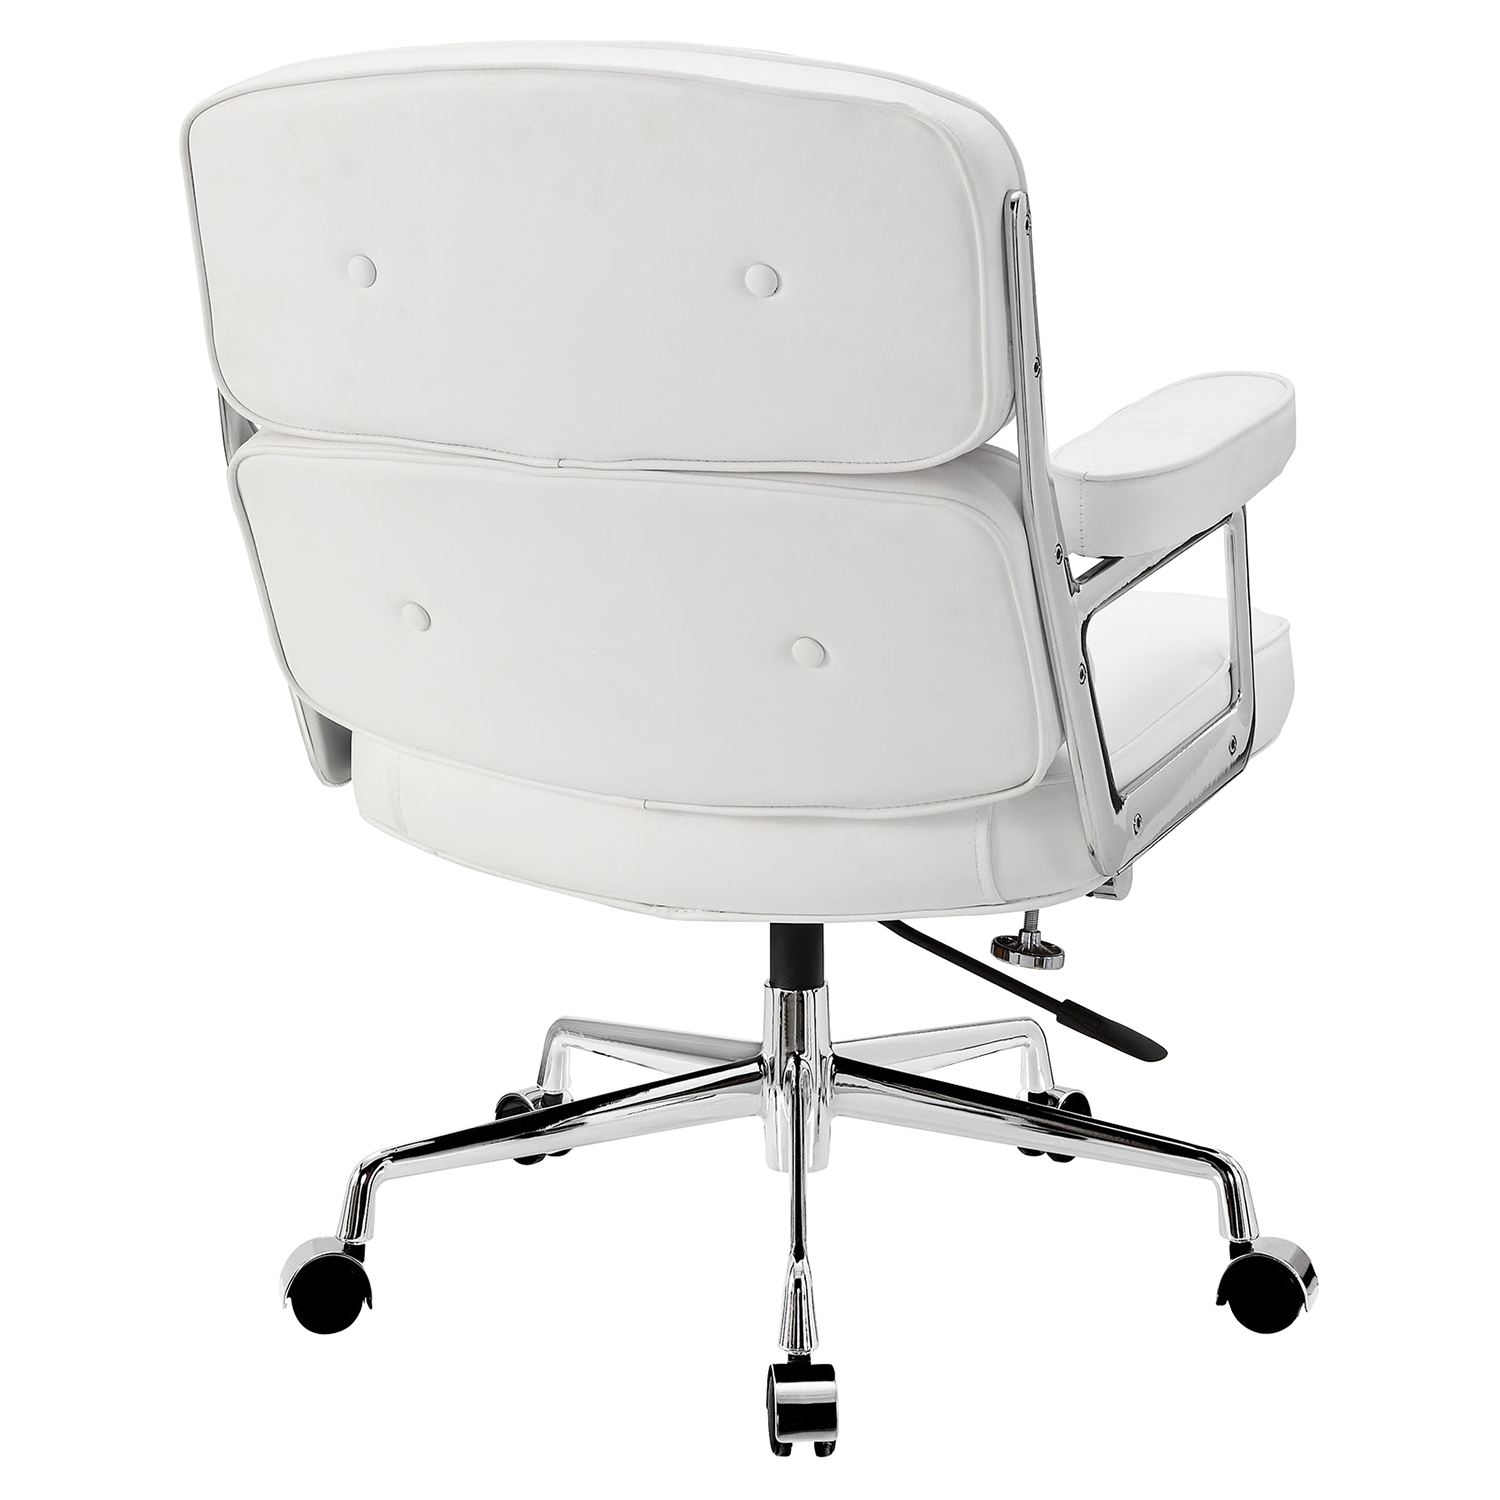 Remix Leatherette Office Chair - Button Tufted, White - EEI-276-WHI